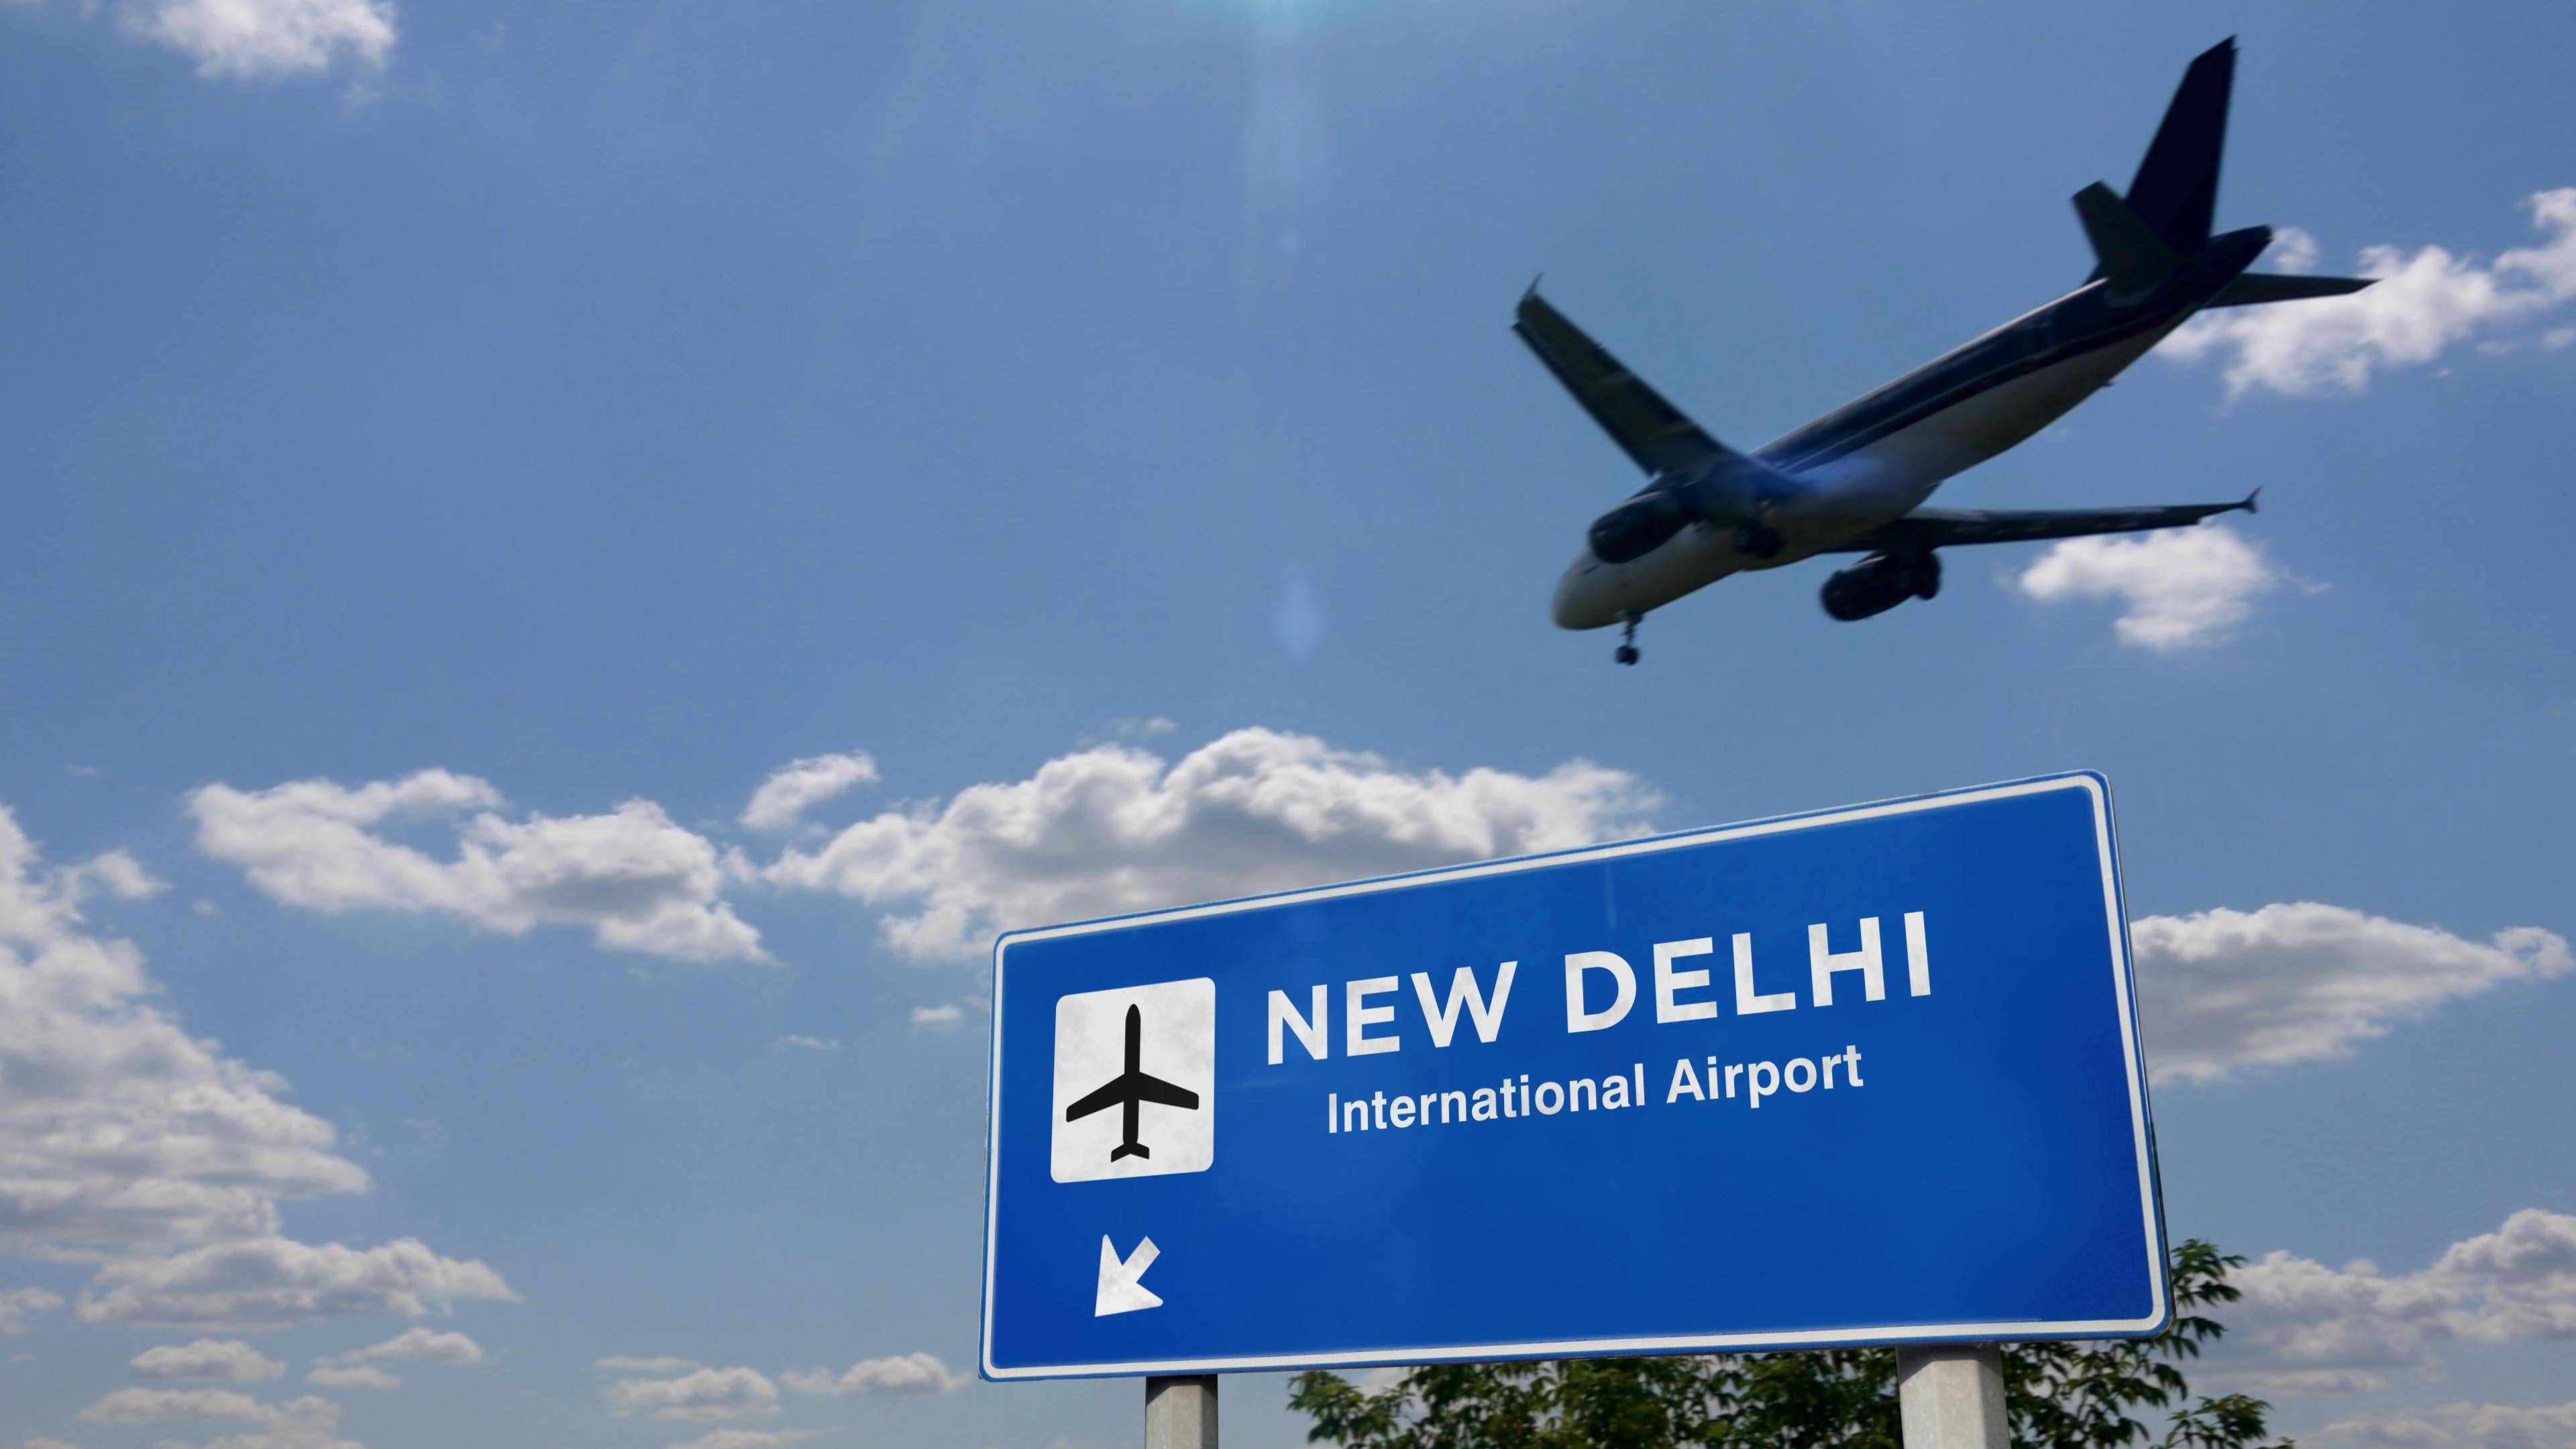 Covid-19: India extends flight ban until August 31